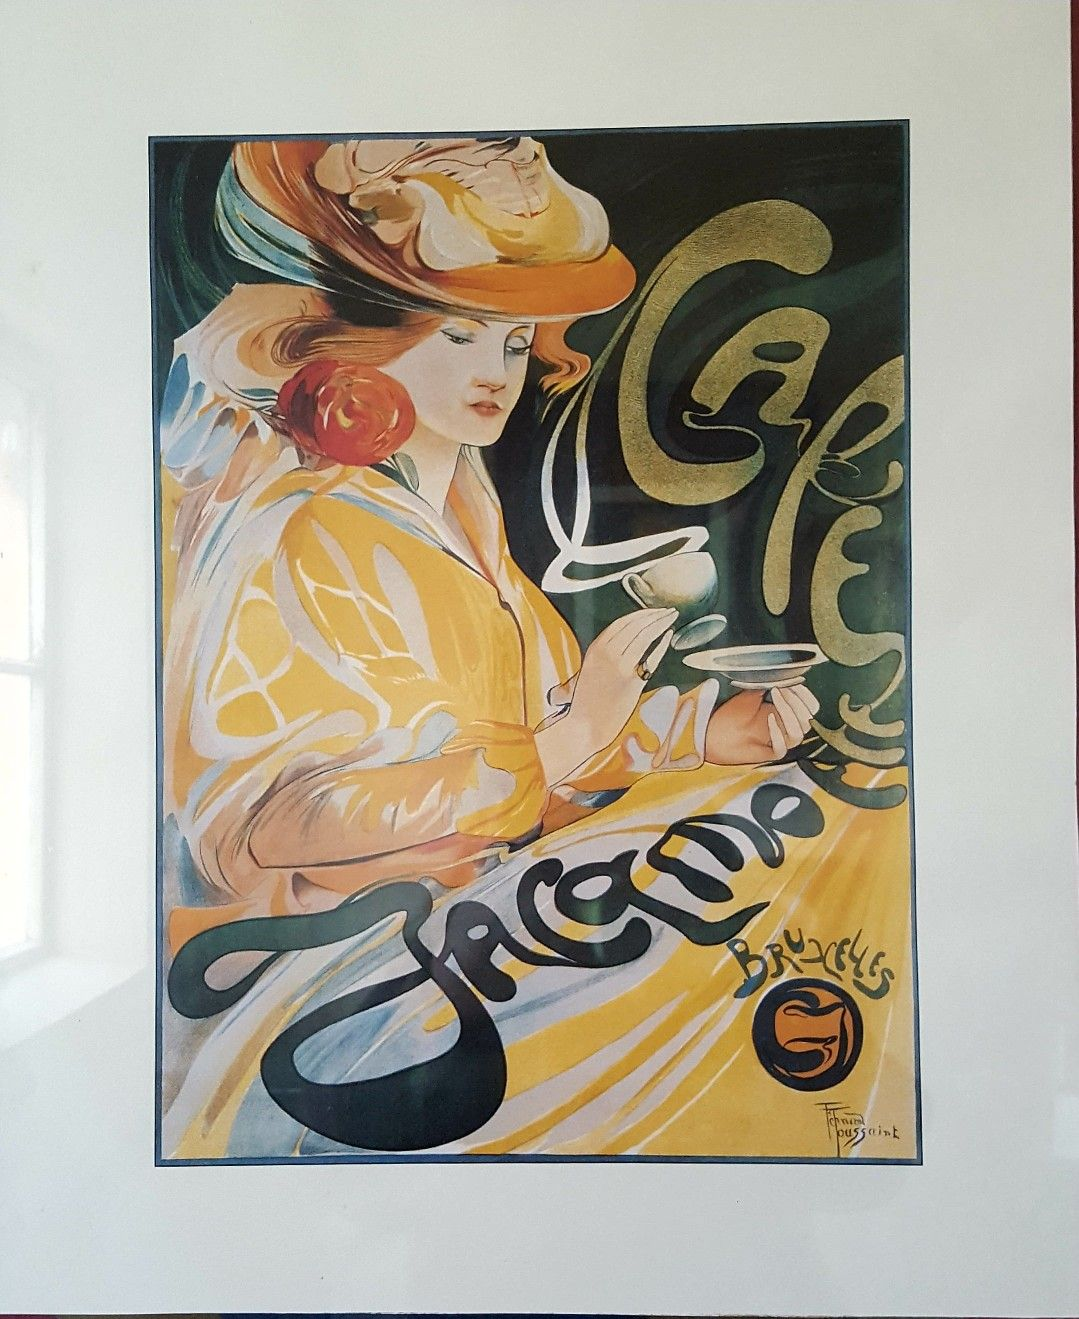 Veey Nice Art By Can T Make Out Artist Name Vintage Posters Art Cool Art